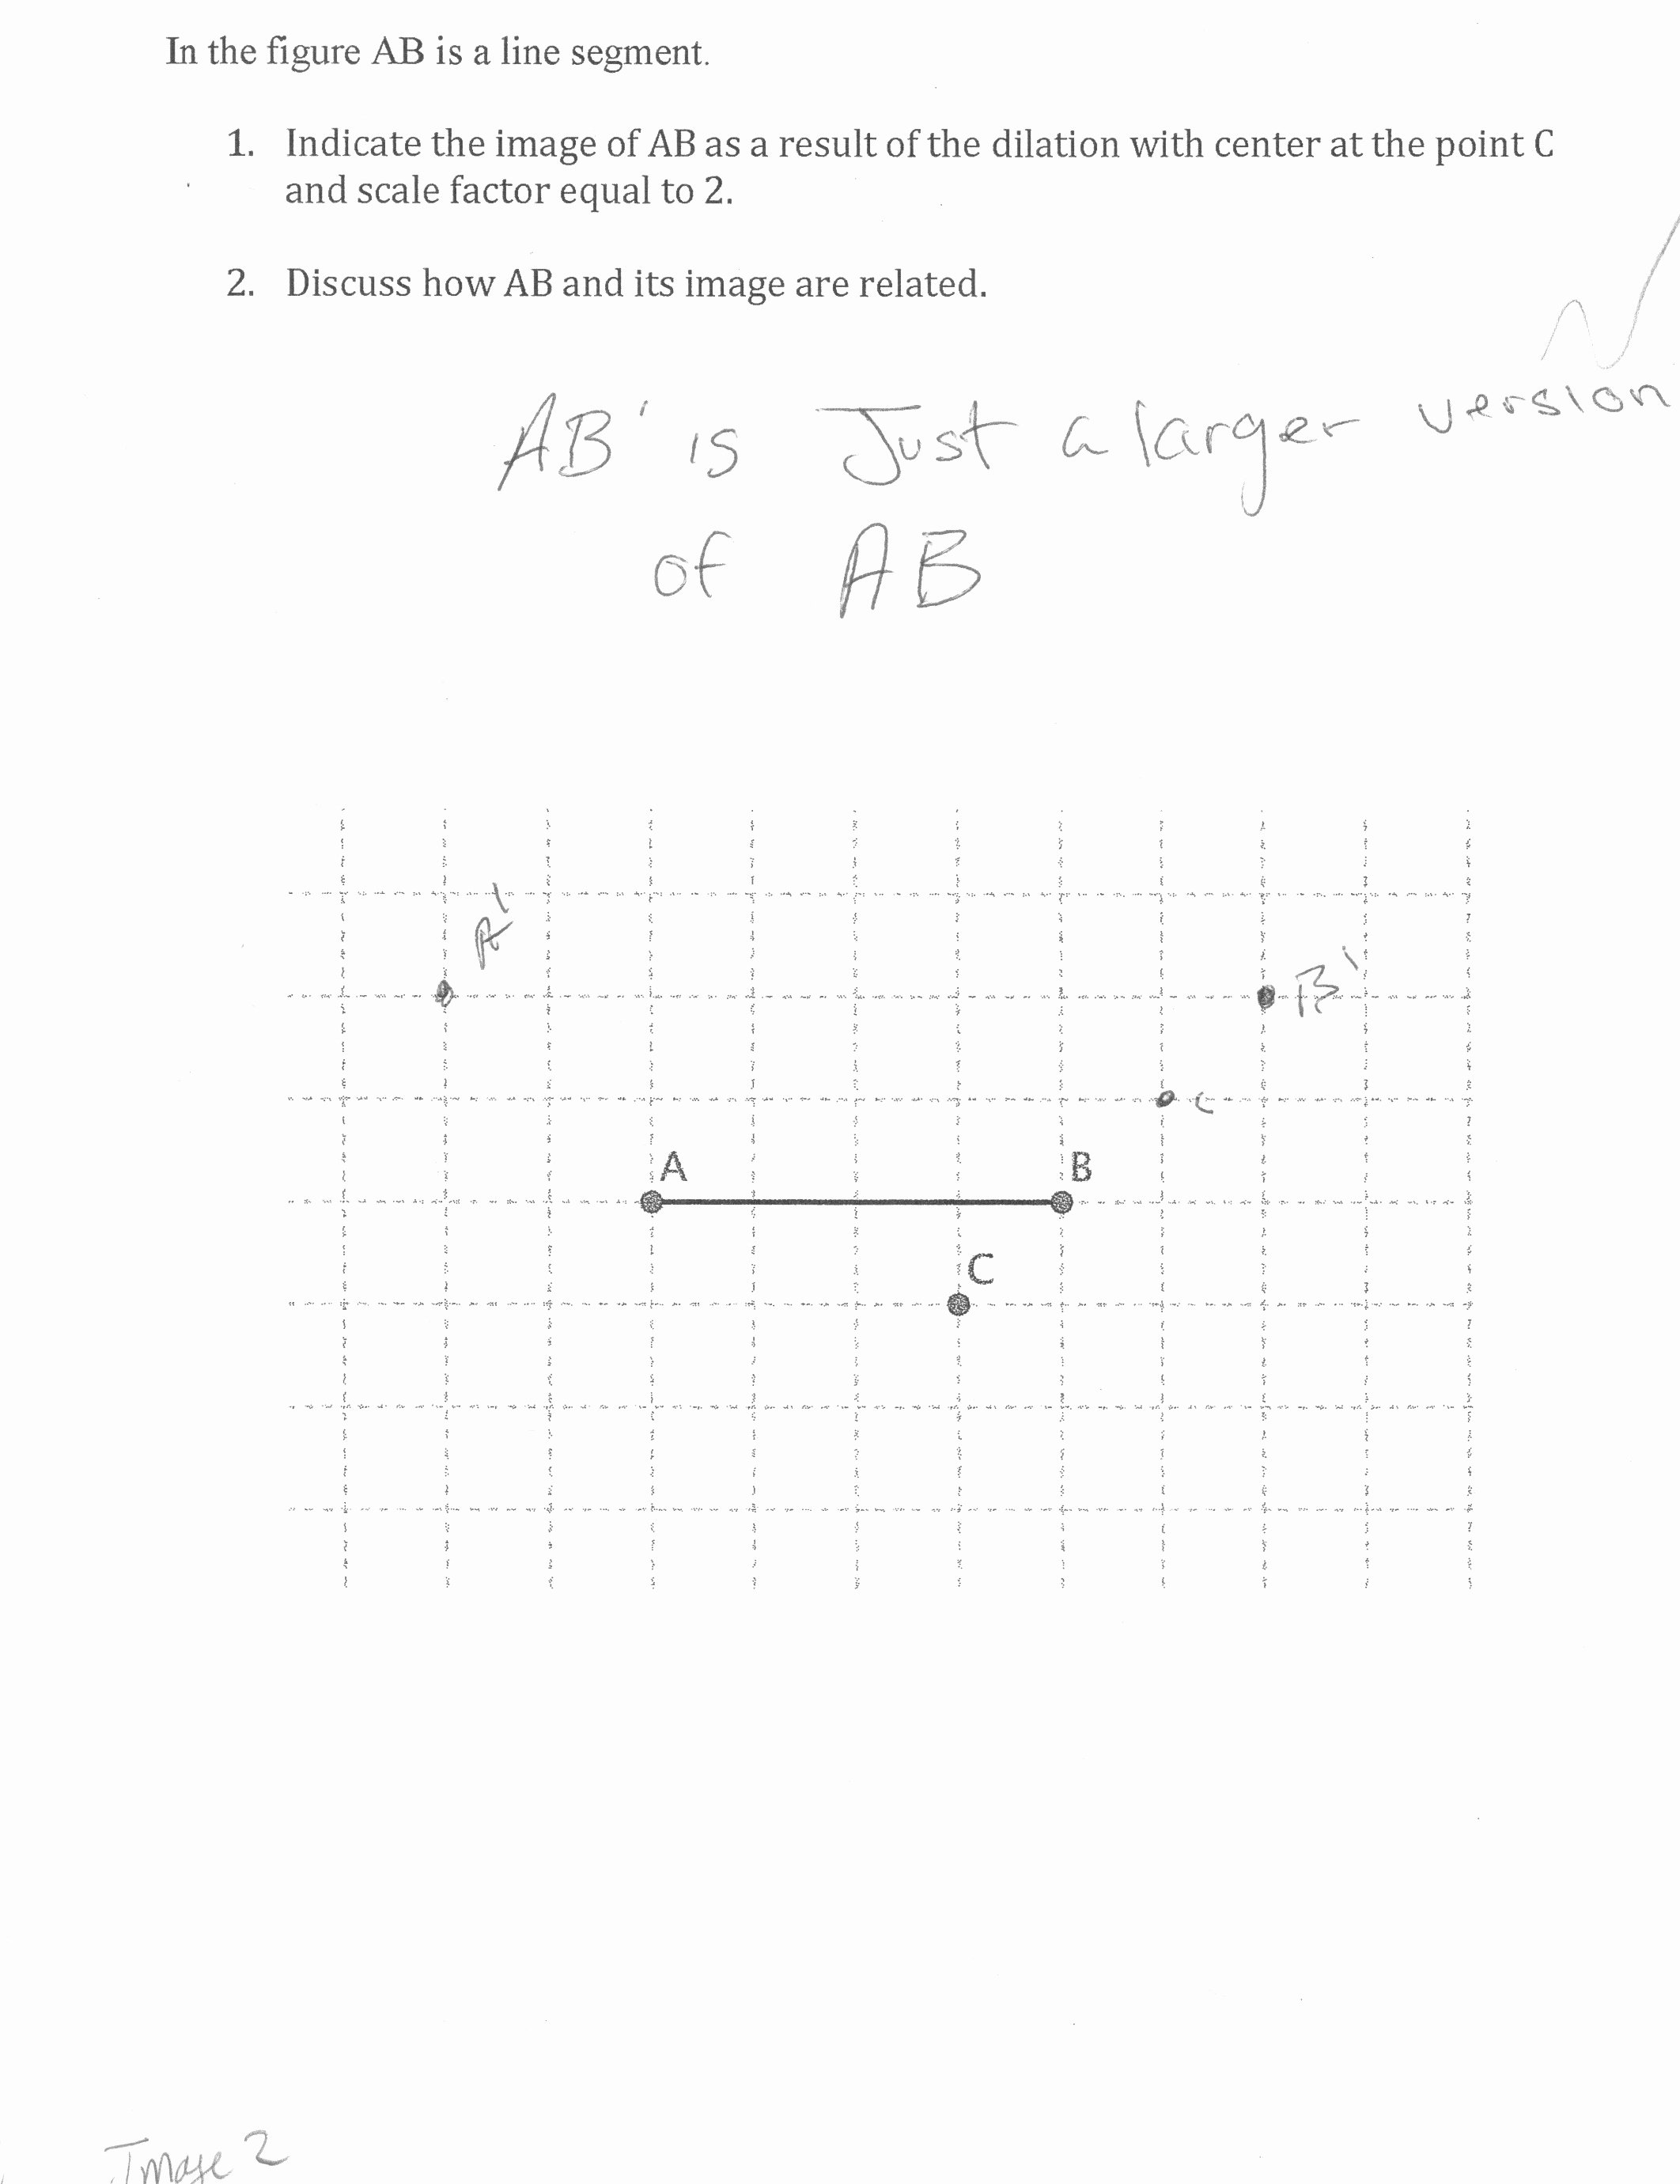 Dilations and Scale Factor Worksheet Beautiful Dilation Of A Line Segment